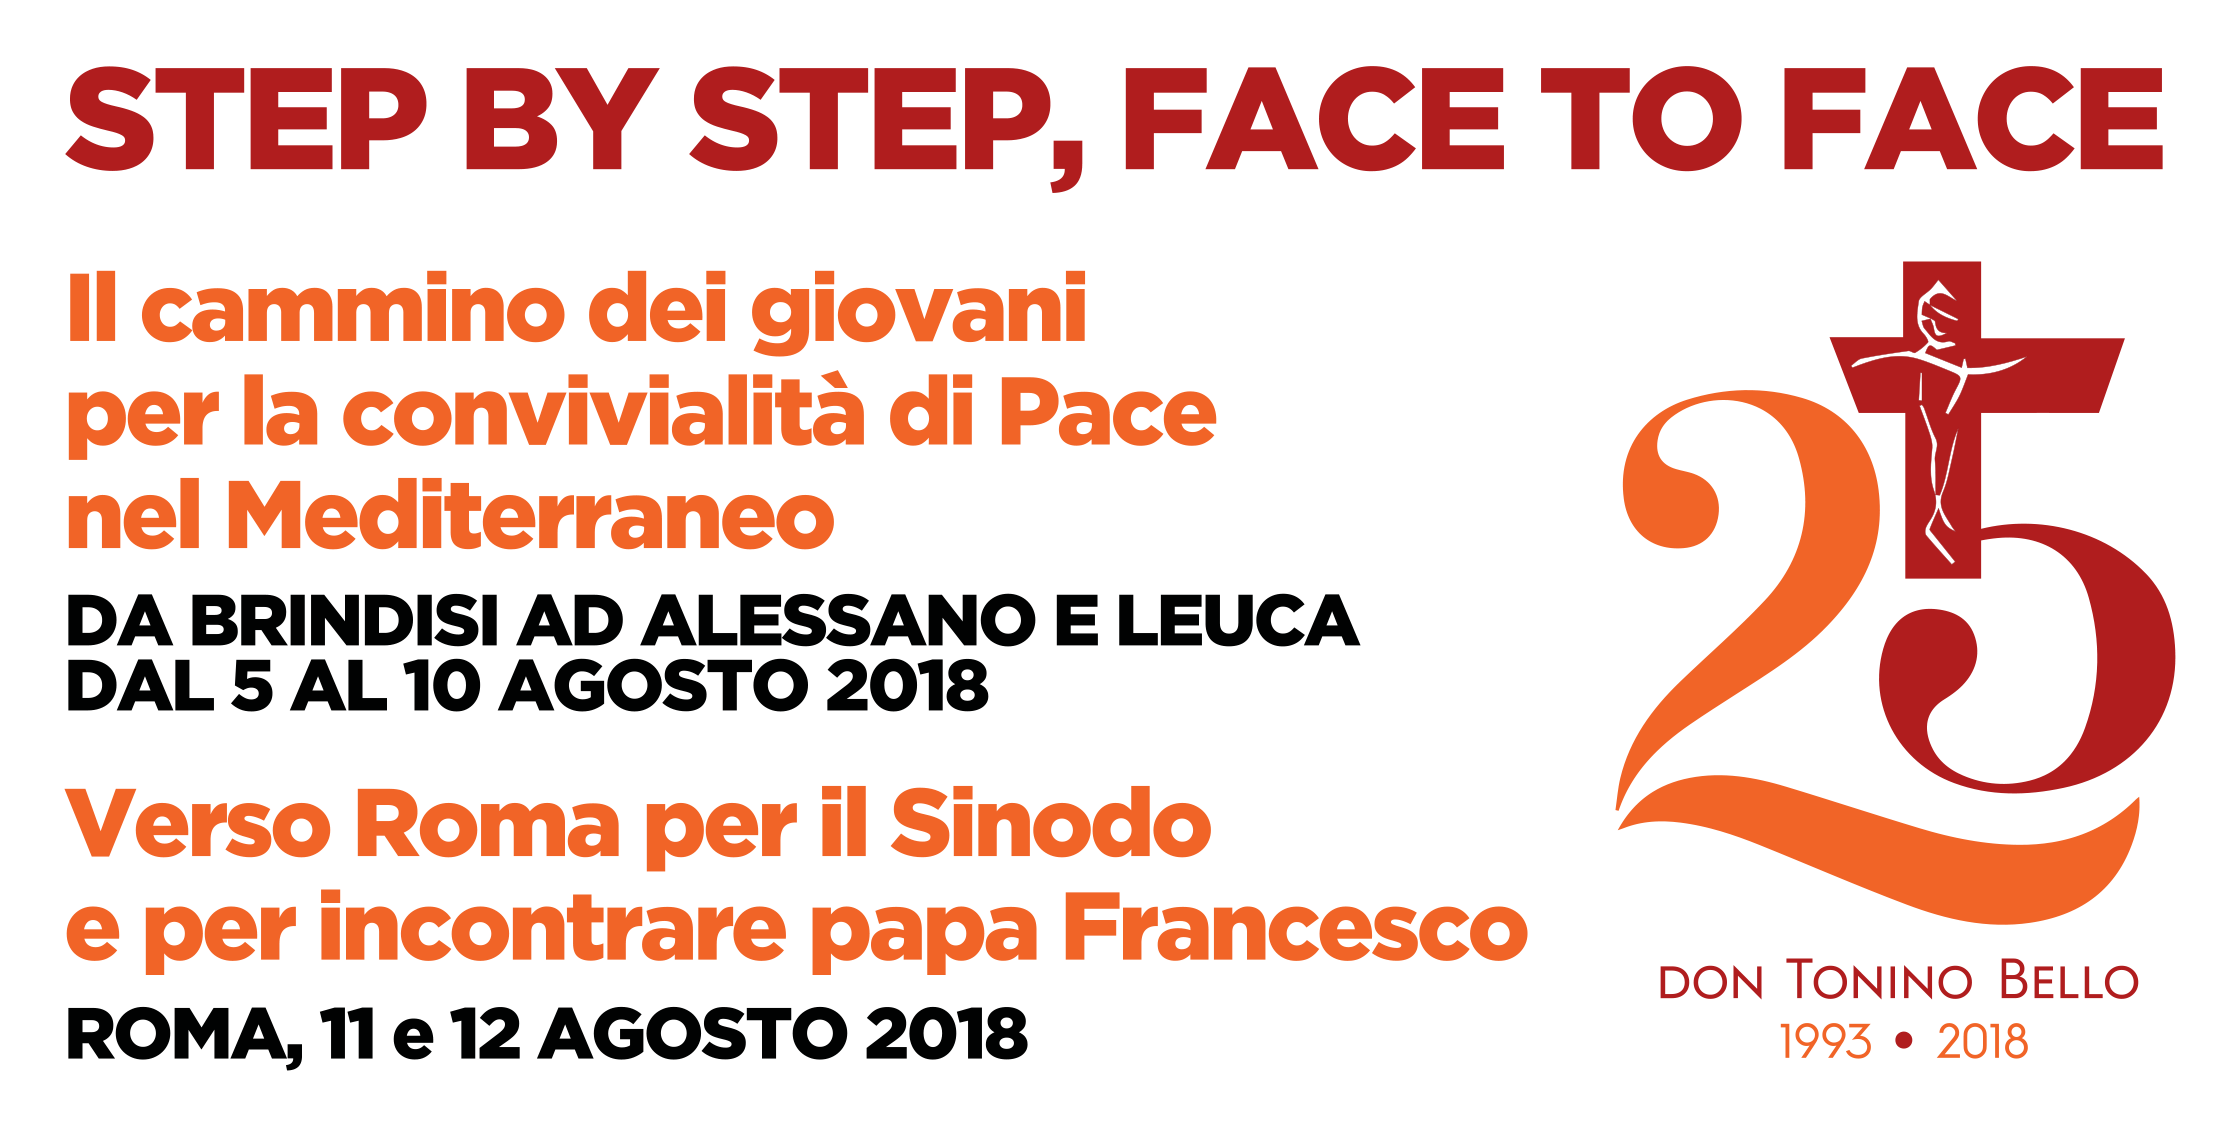 step-by-step-face-to-face